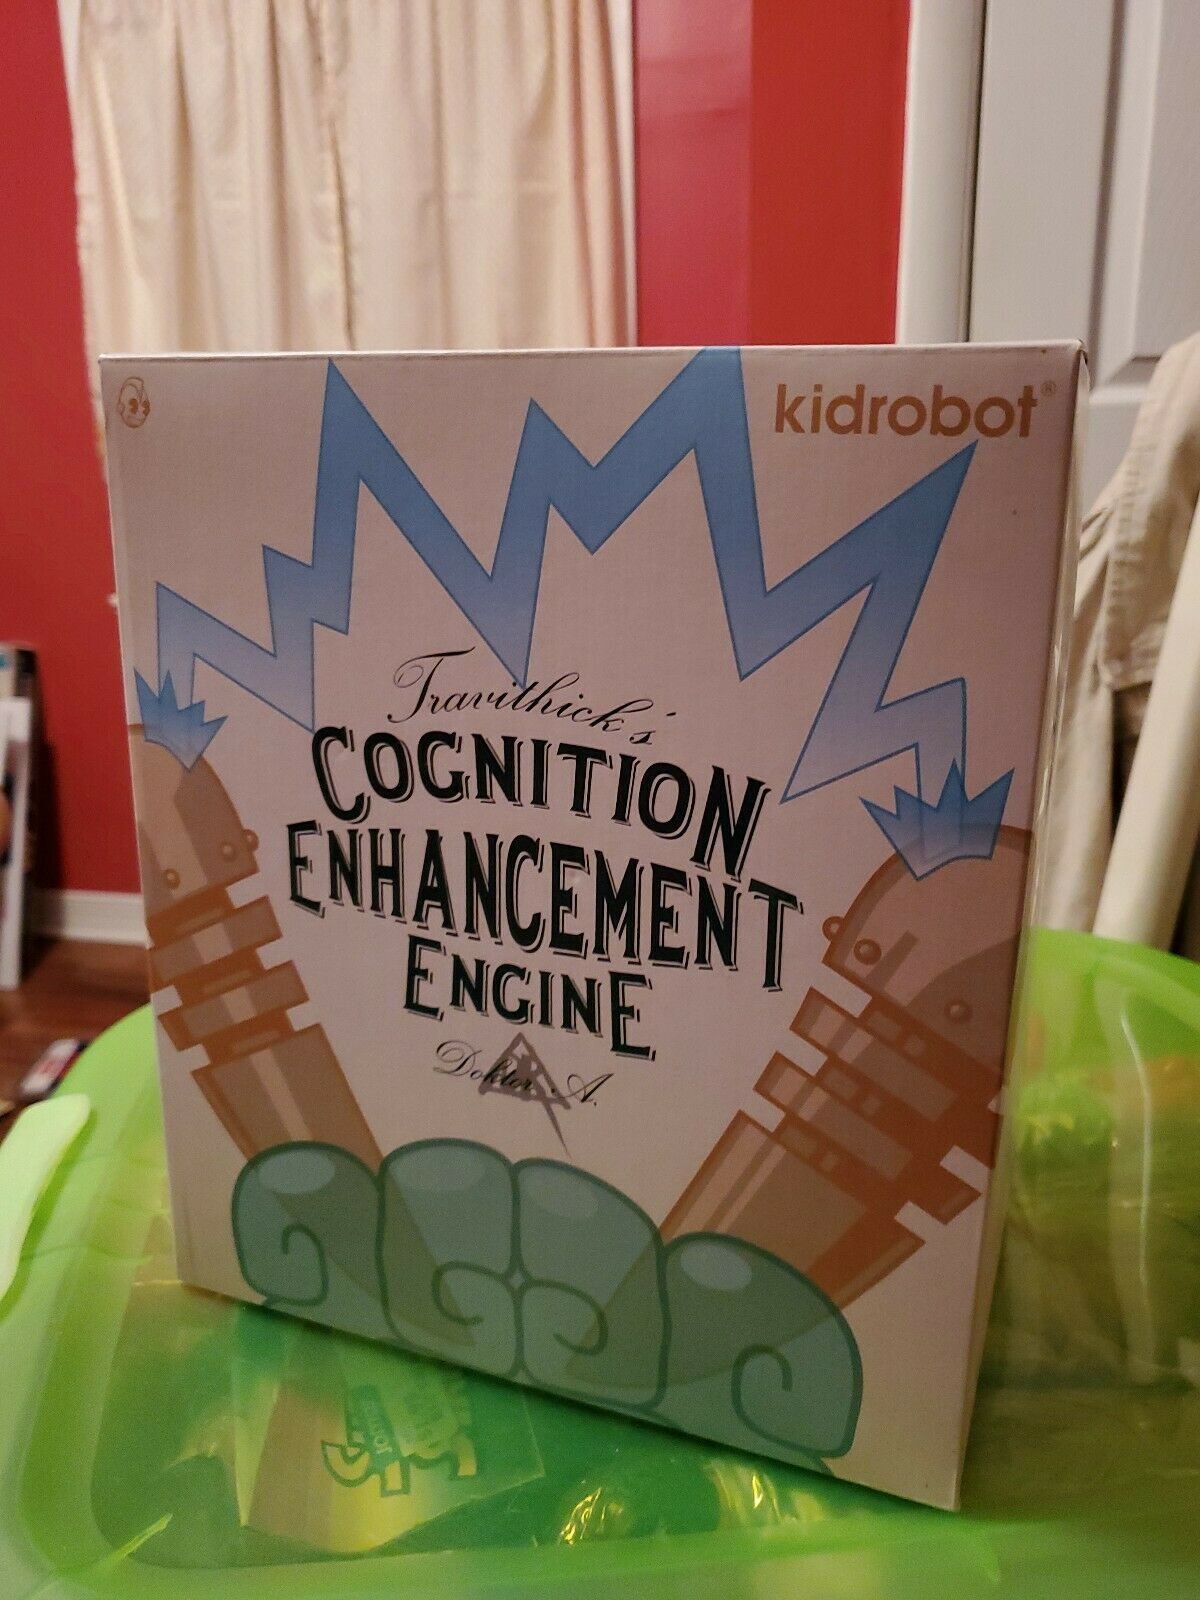 NECA KIDROBOT Cognition Engine Dunny Sofubi 2018 - MiB New In Box Doctor A rot